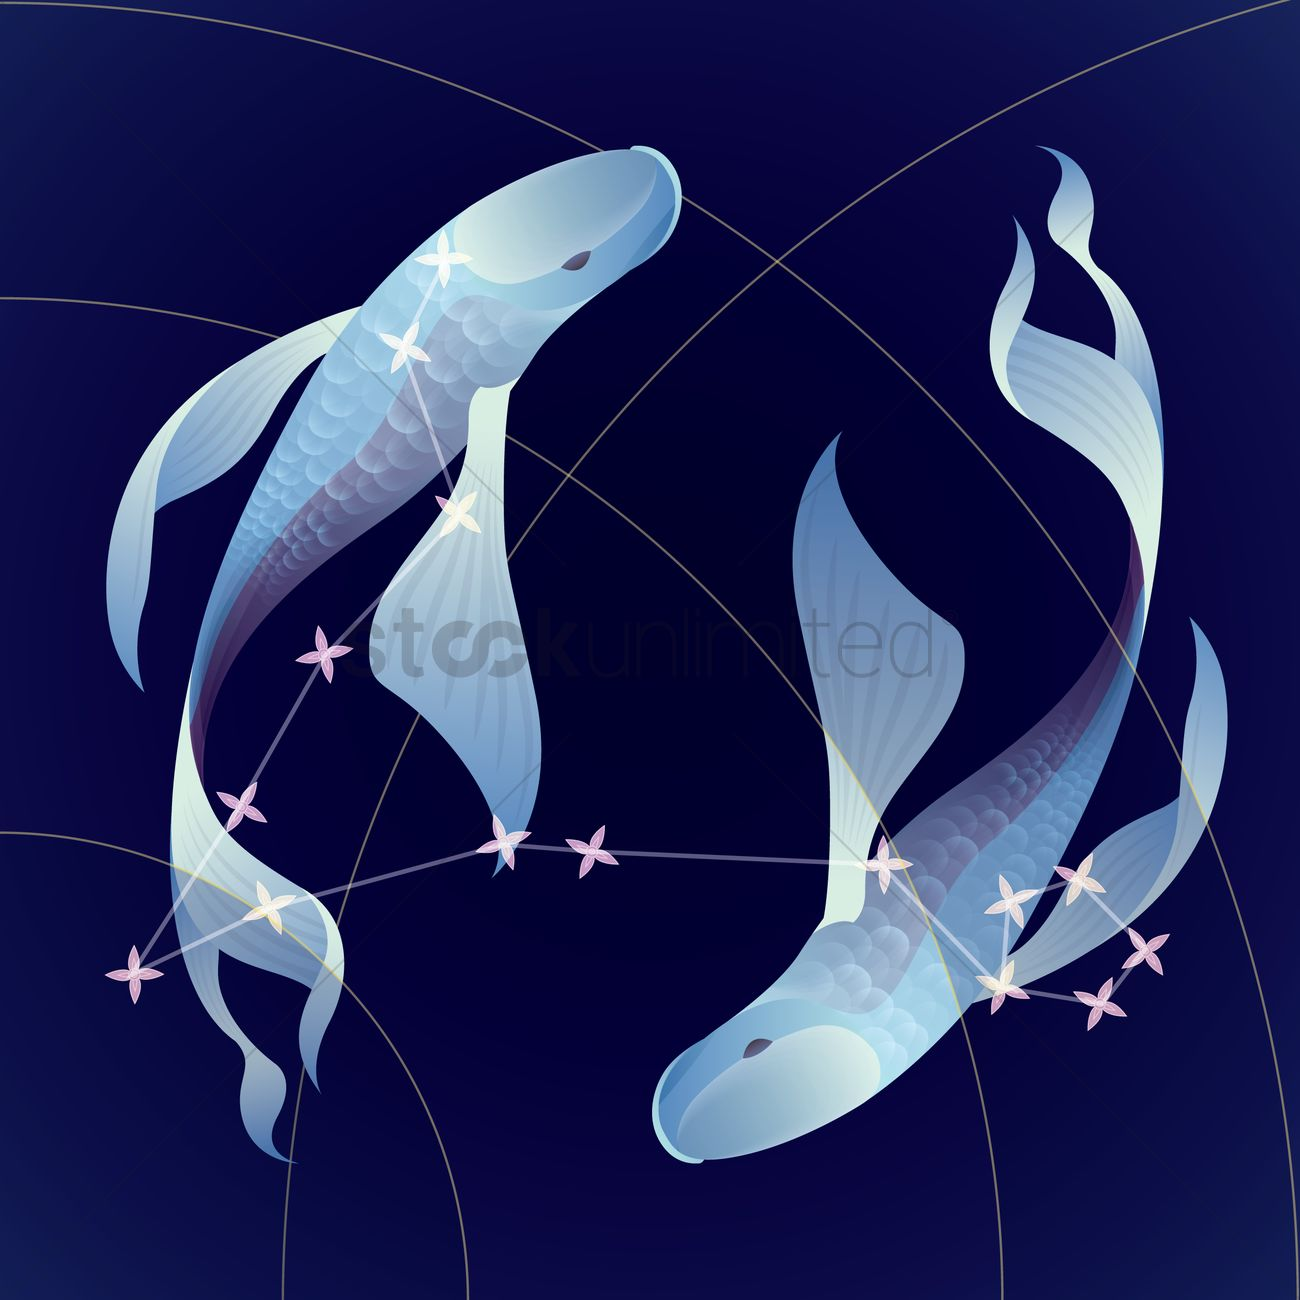 Pisces constellation Vector Image - 1969067 | StockUnlimited